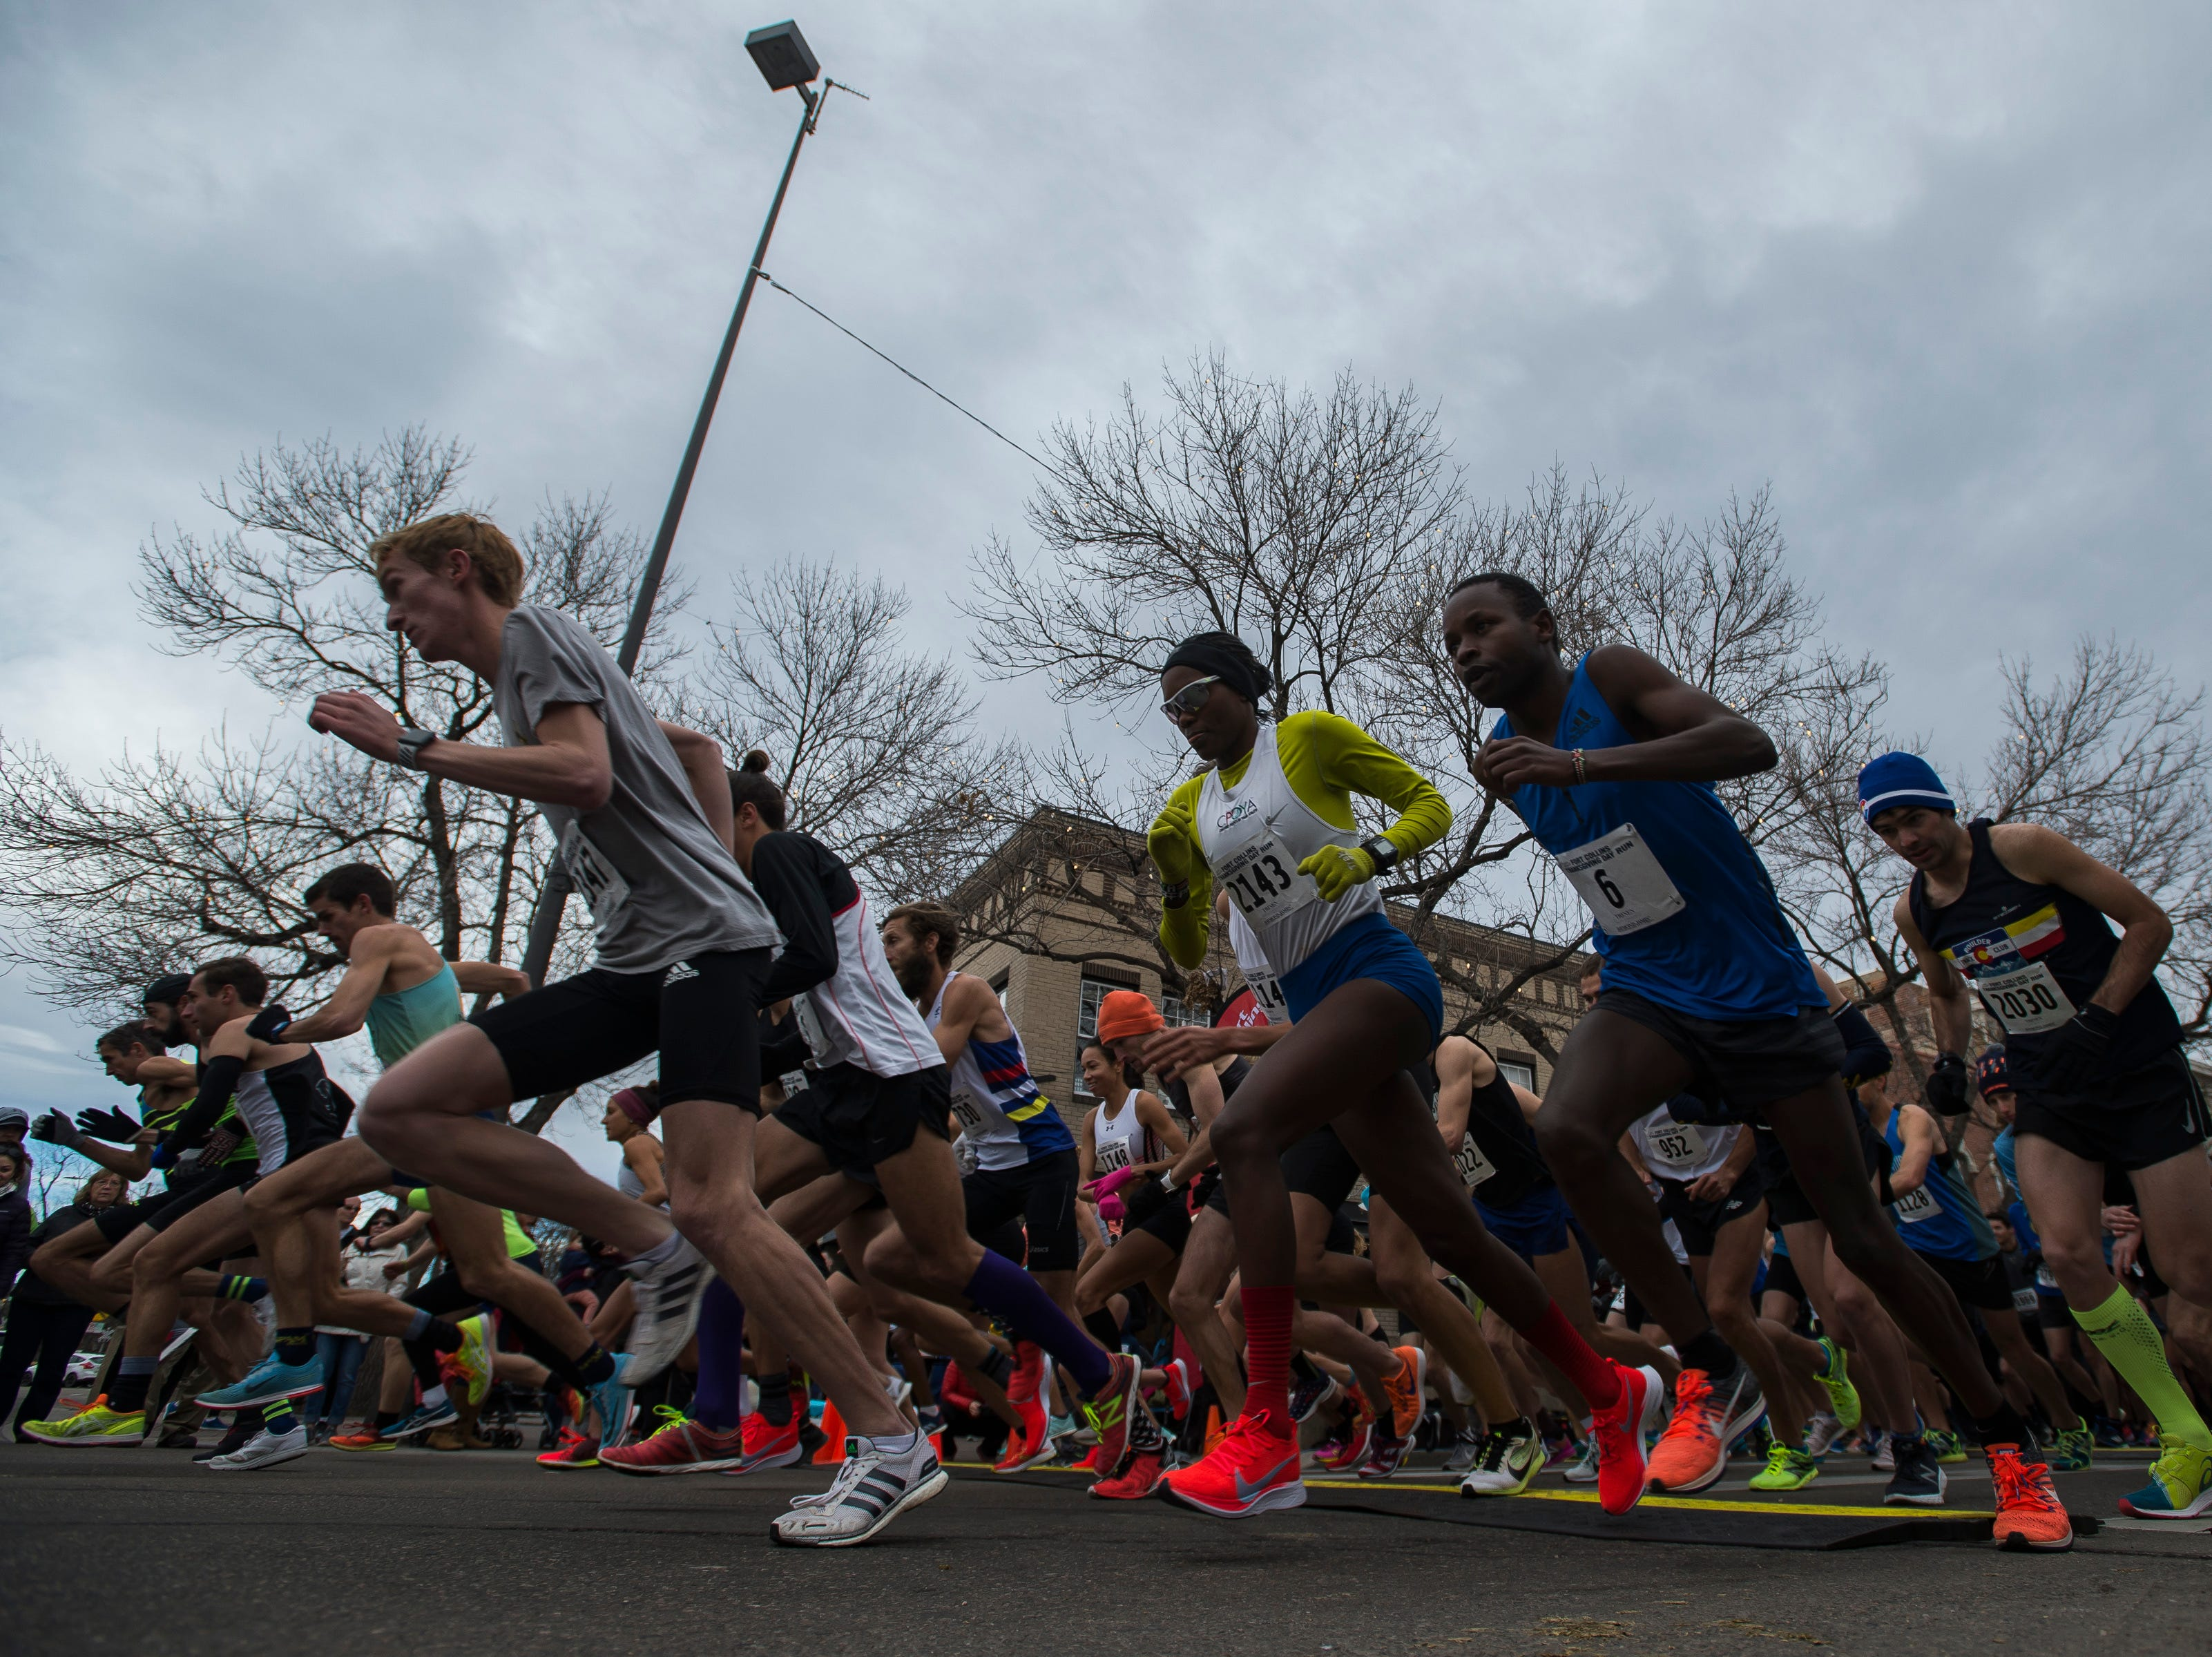 Runners take off from the start line during the Fort Collins Thanksgiving Day Run on Thursday, Nov. 22, 2018, in Old Town Fort Collins, Colo.